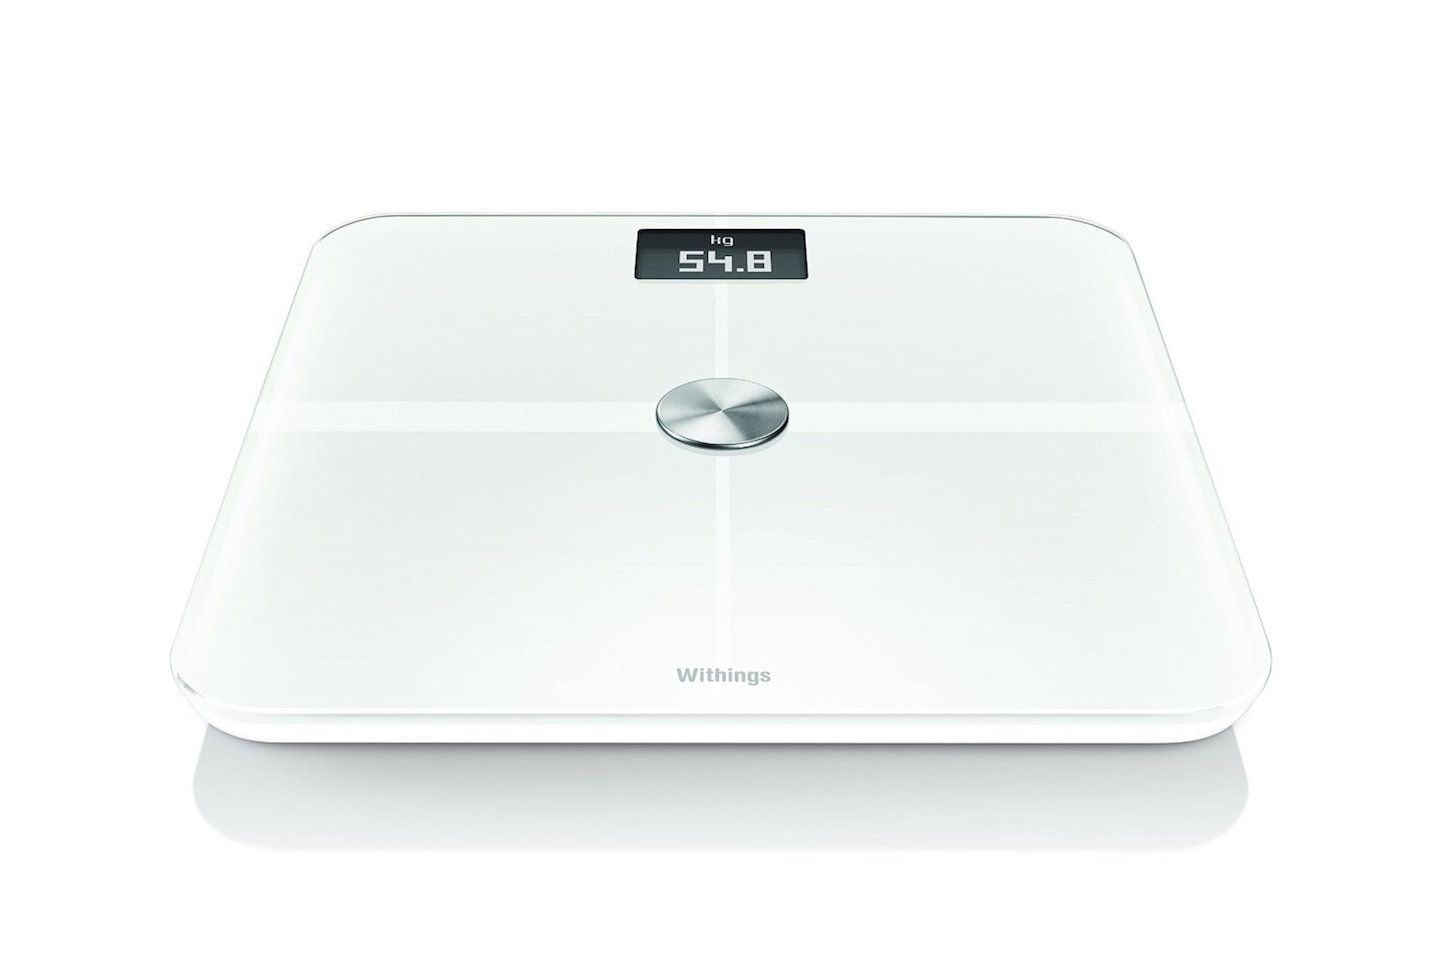 Withings wd 50